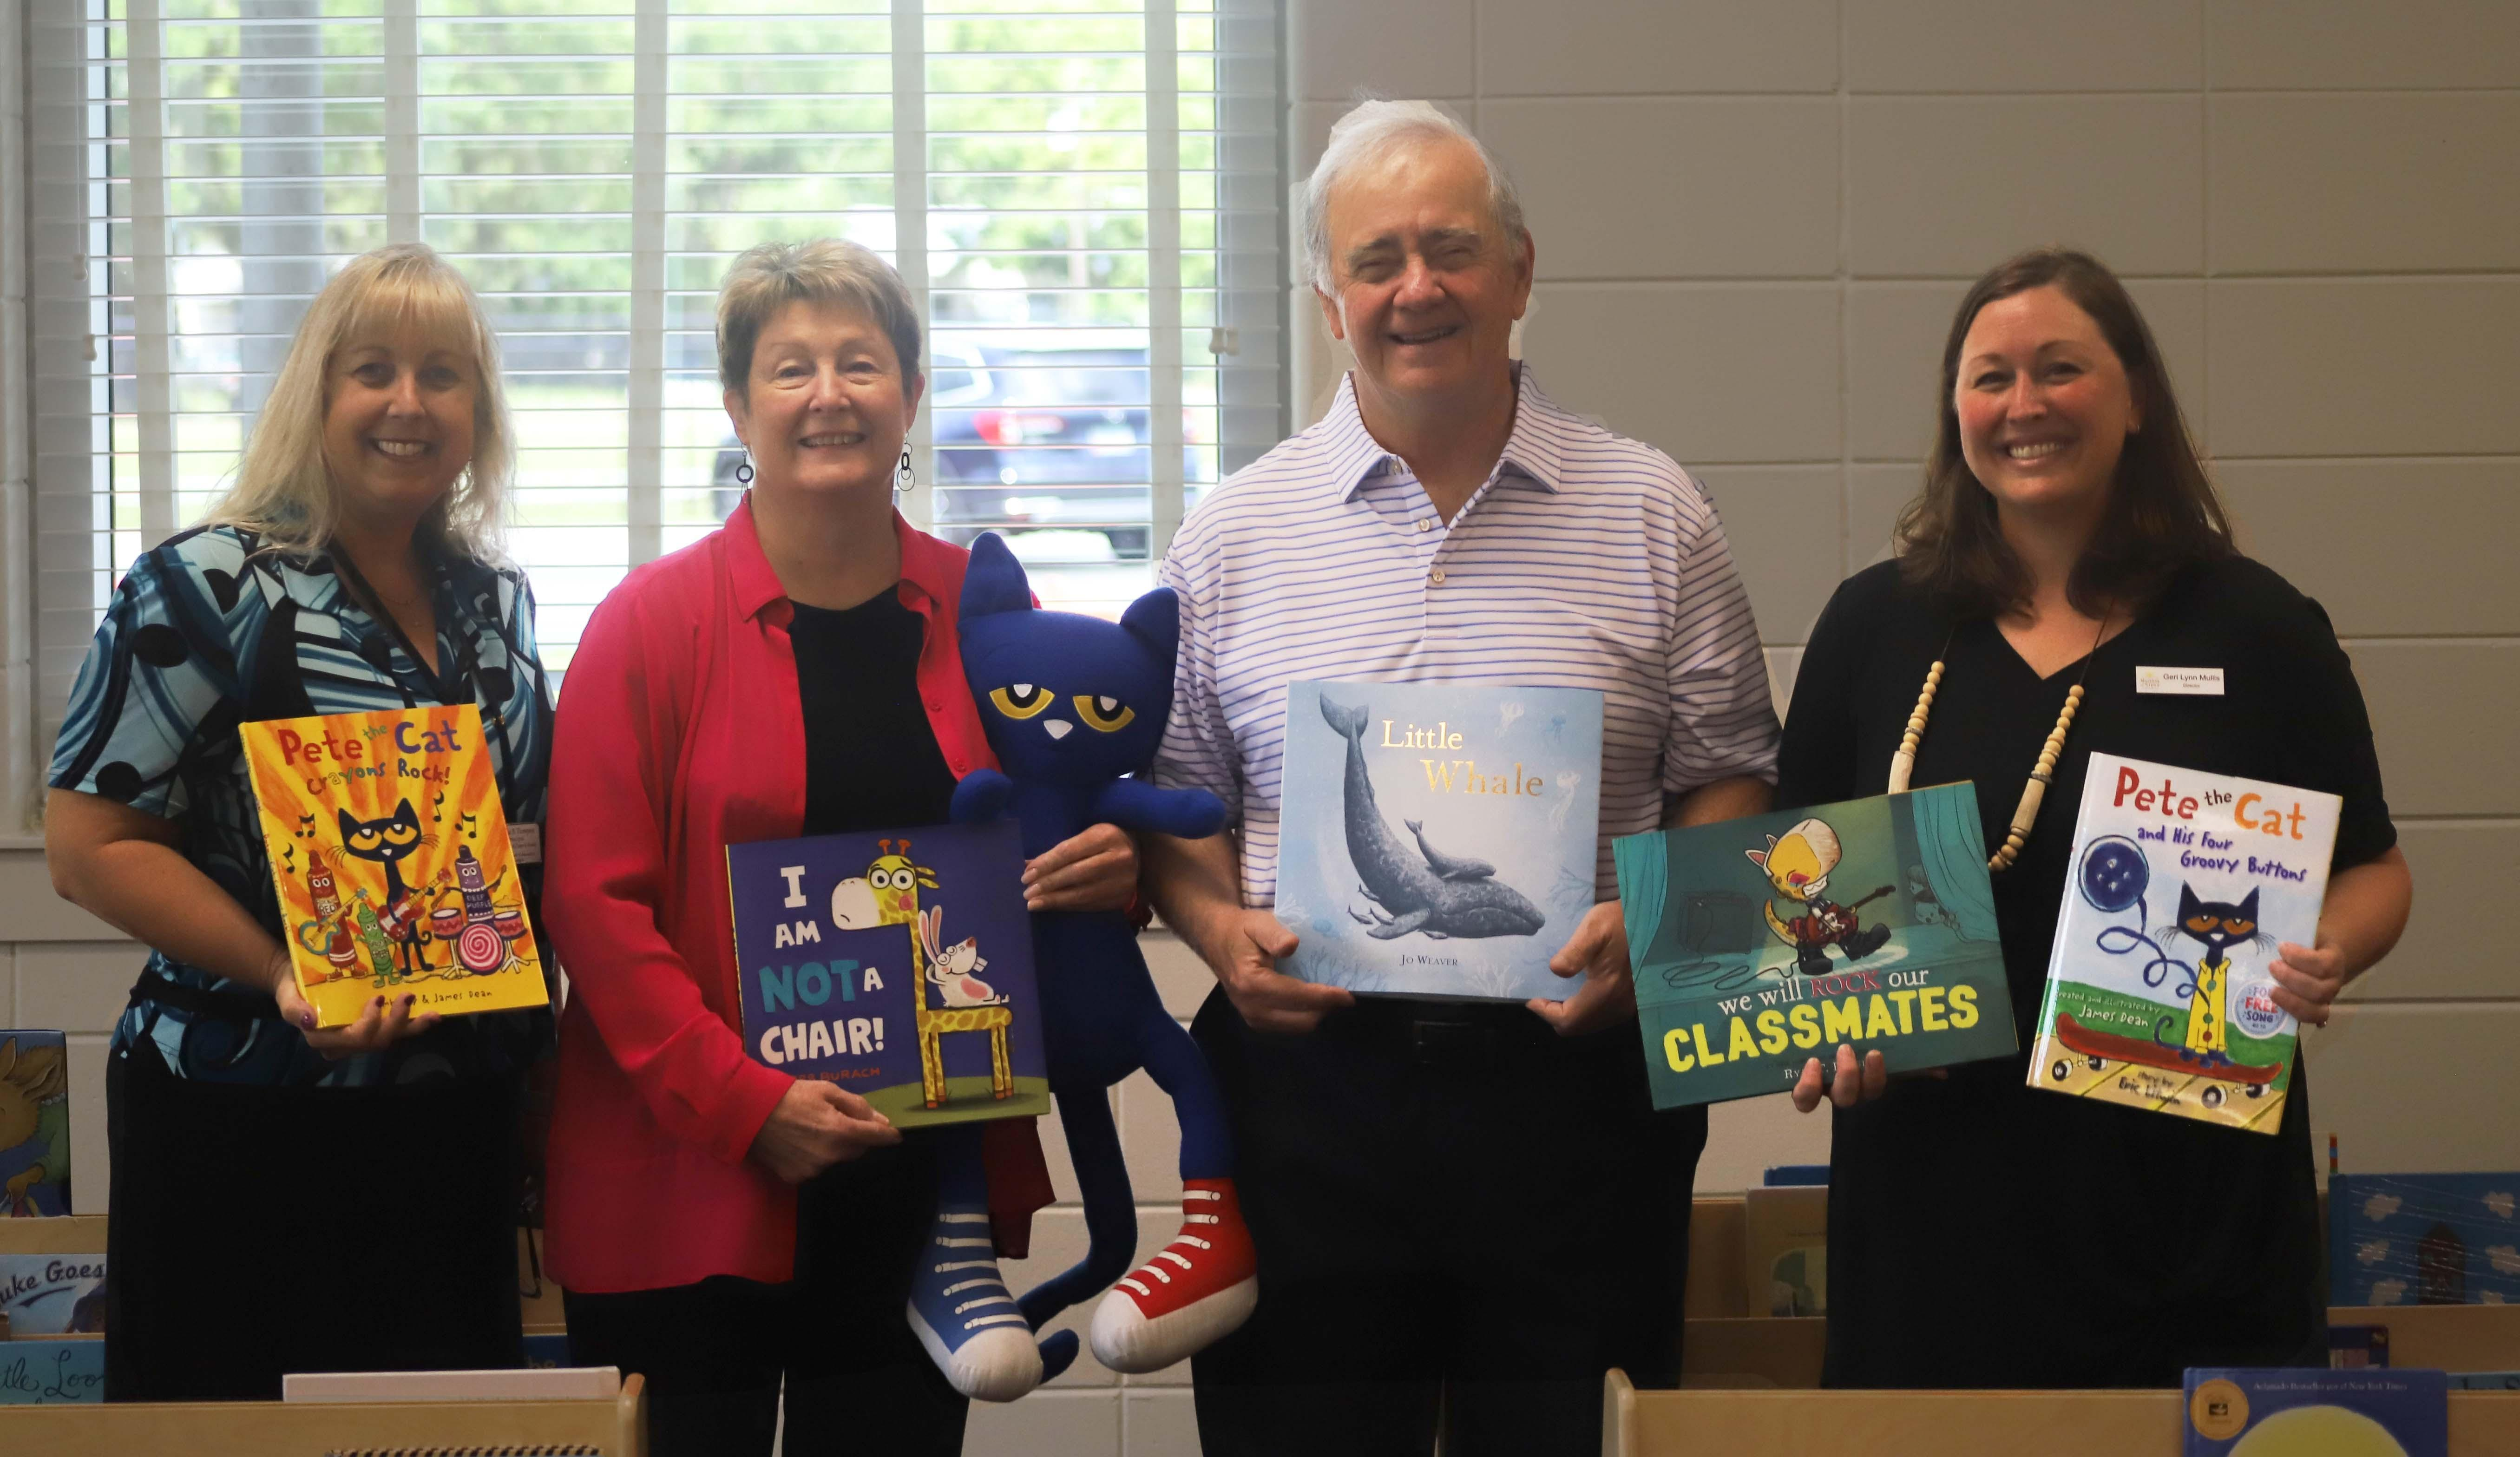 St. Simons Rotary Club members, along with the Marshes of Glynn Library, donate books to FACES PreK Center.